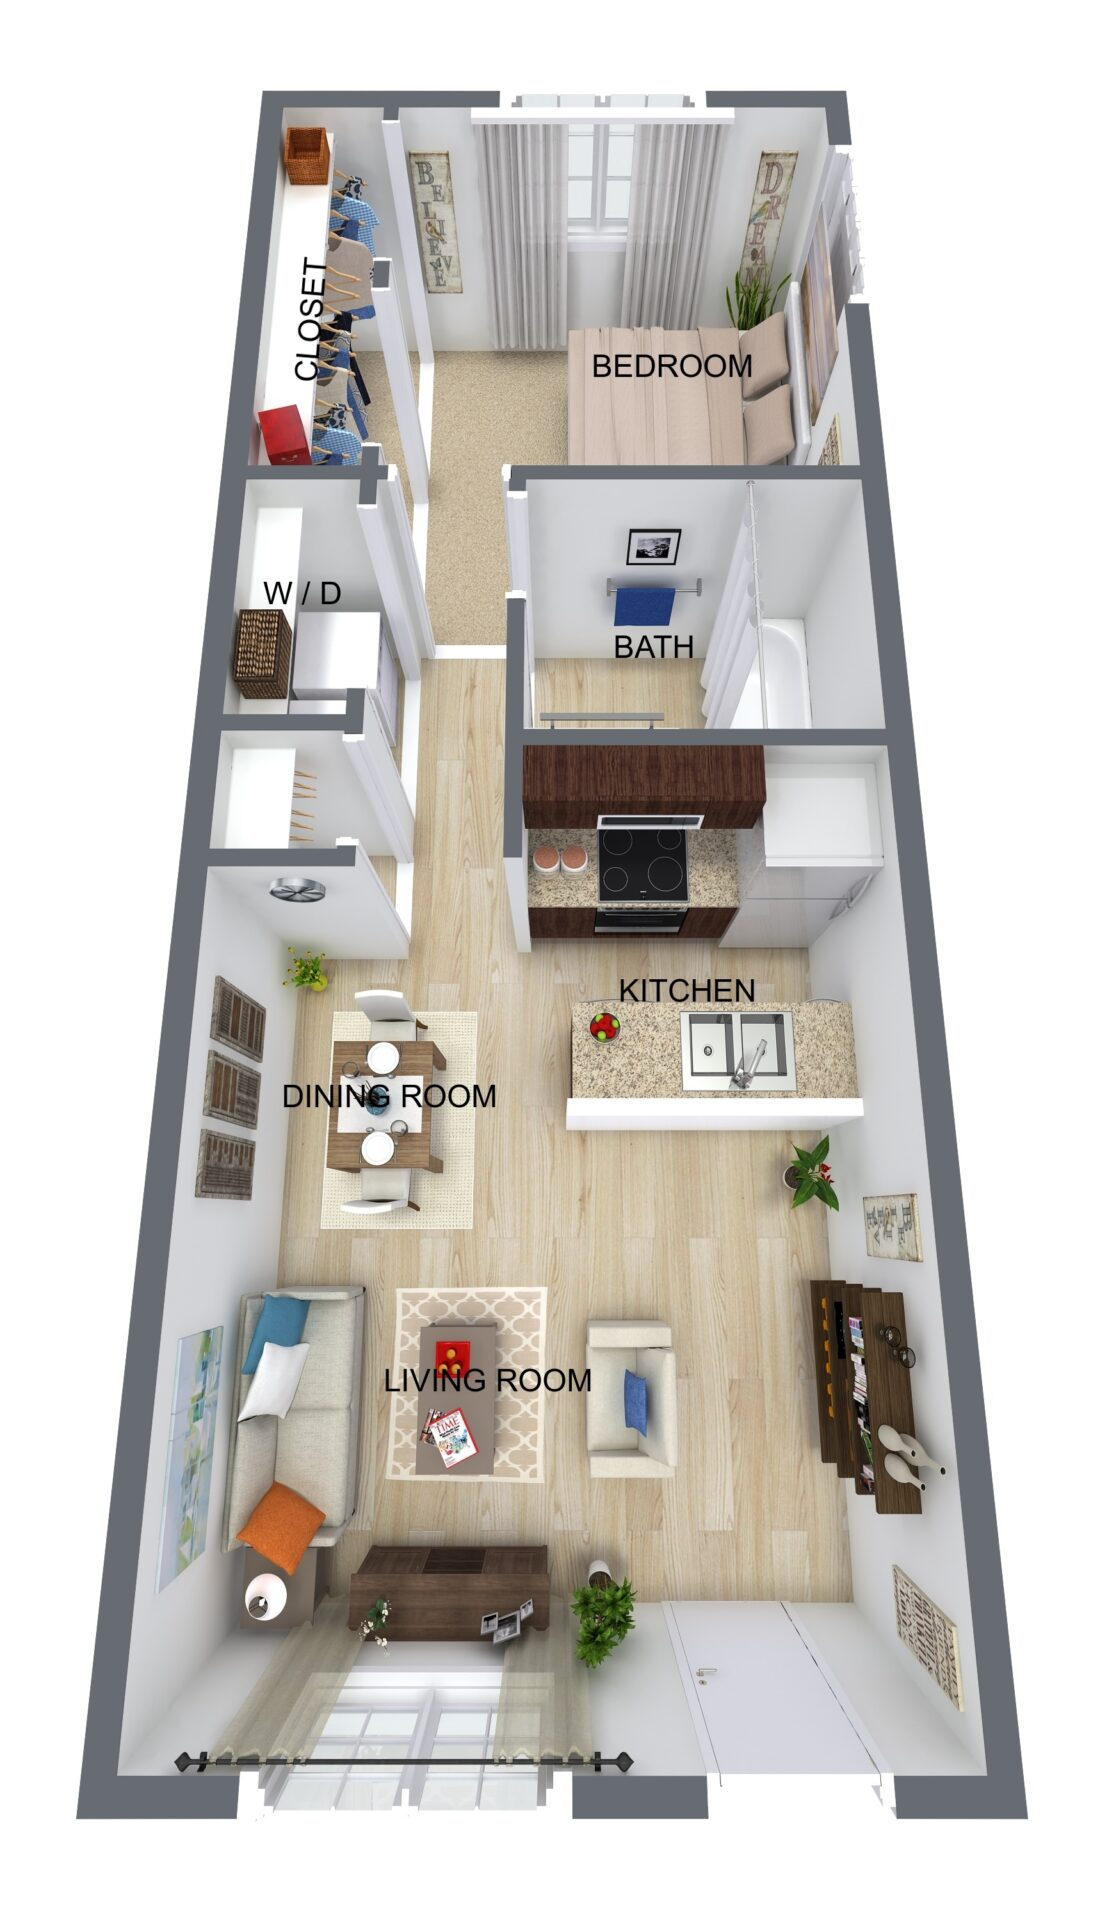 2BR - new construction